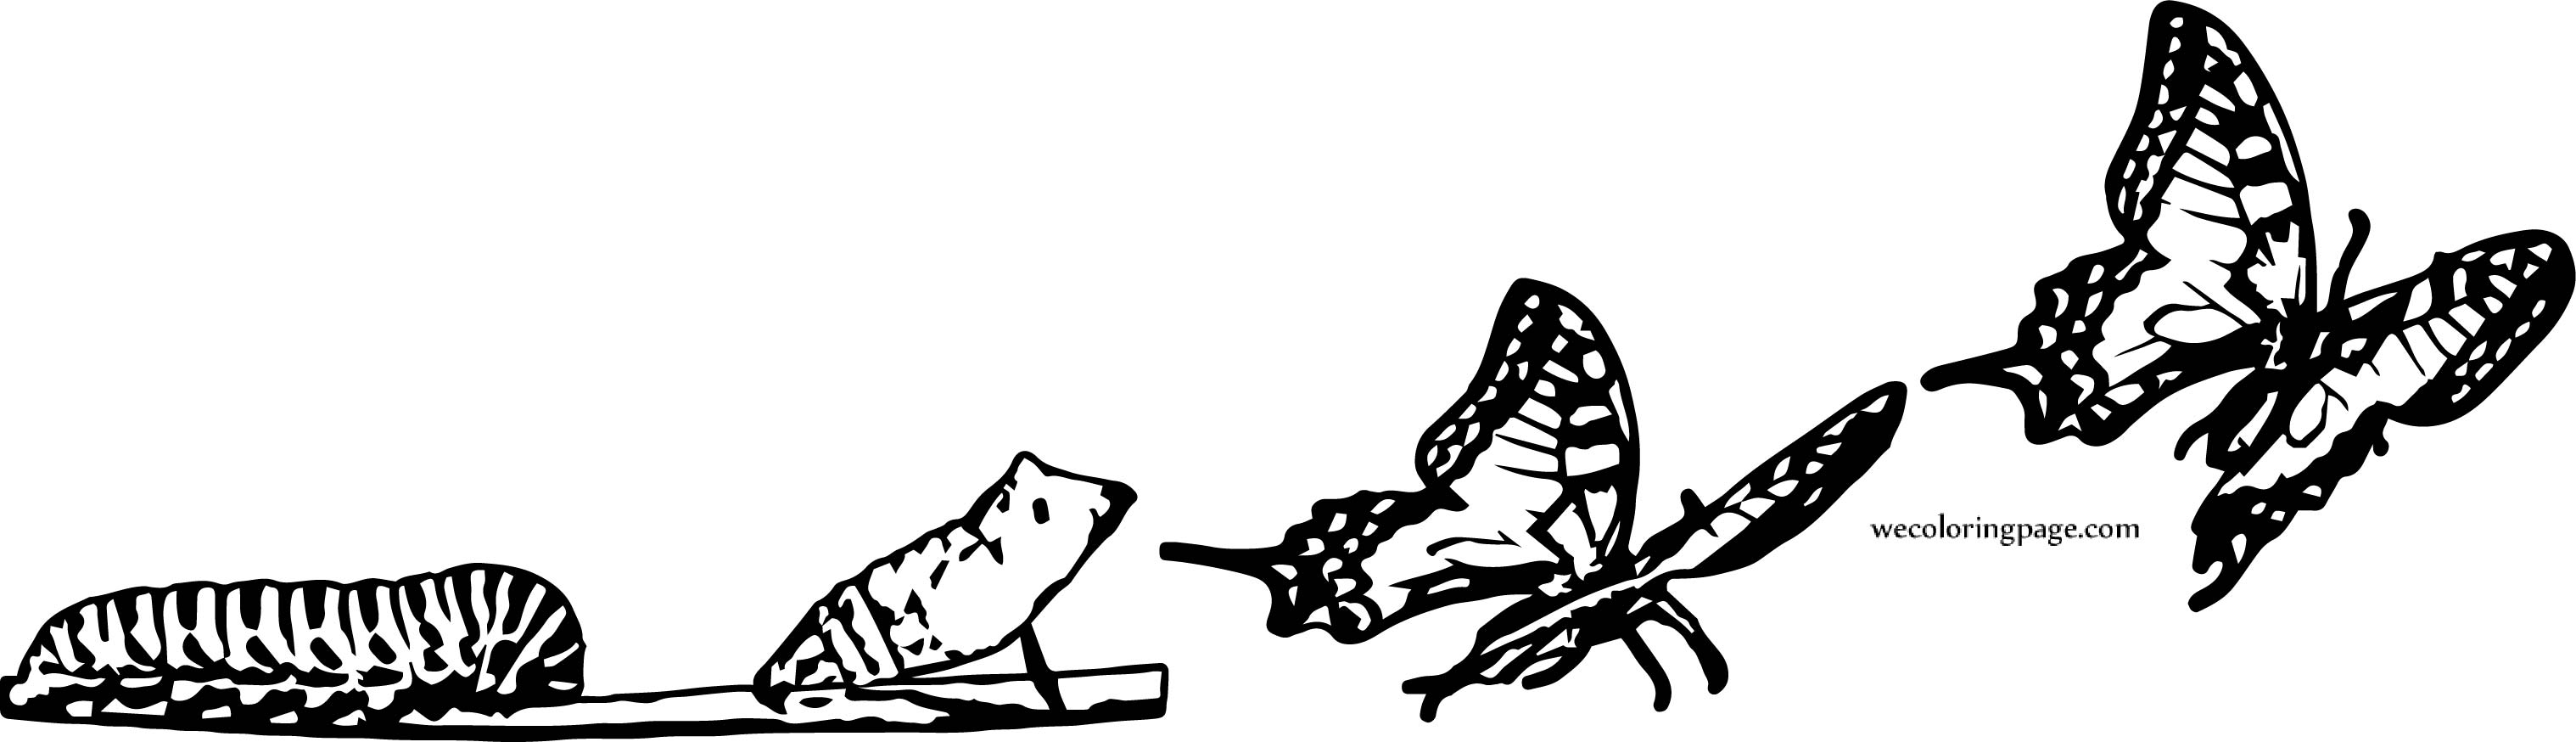 Butterfly Evolution Coloring Page